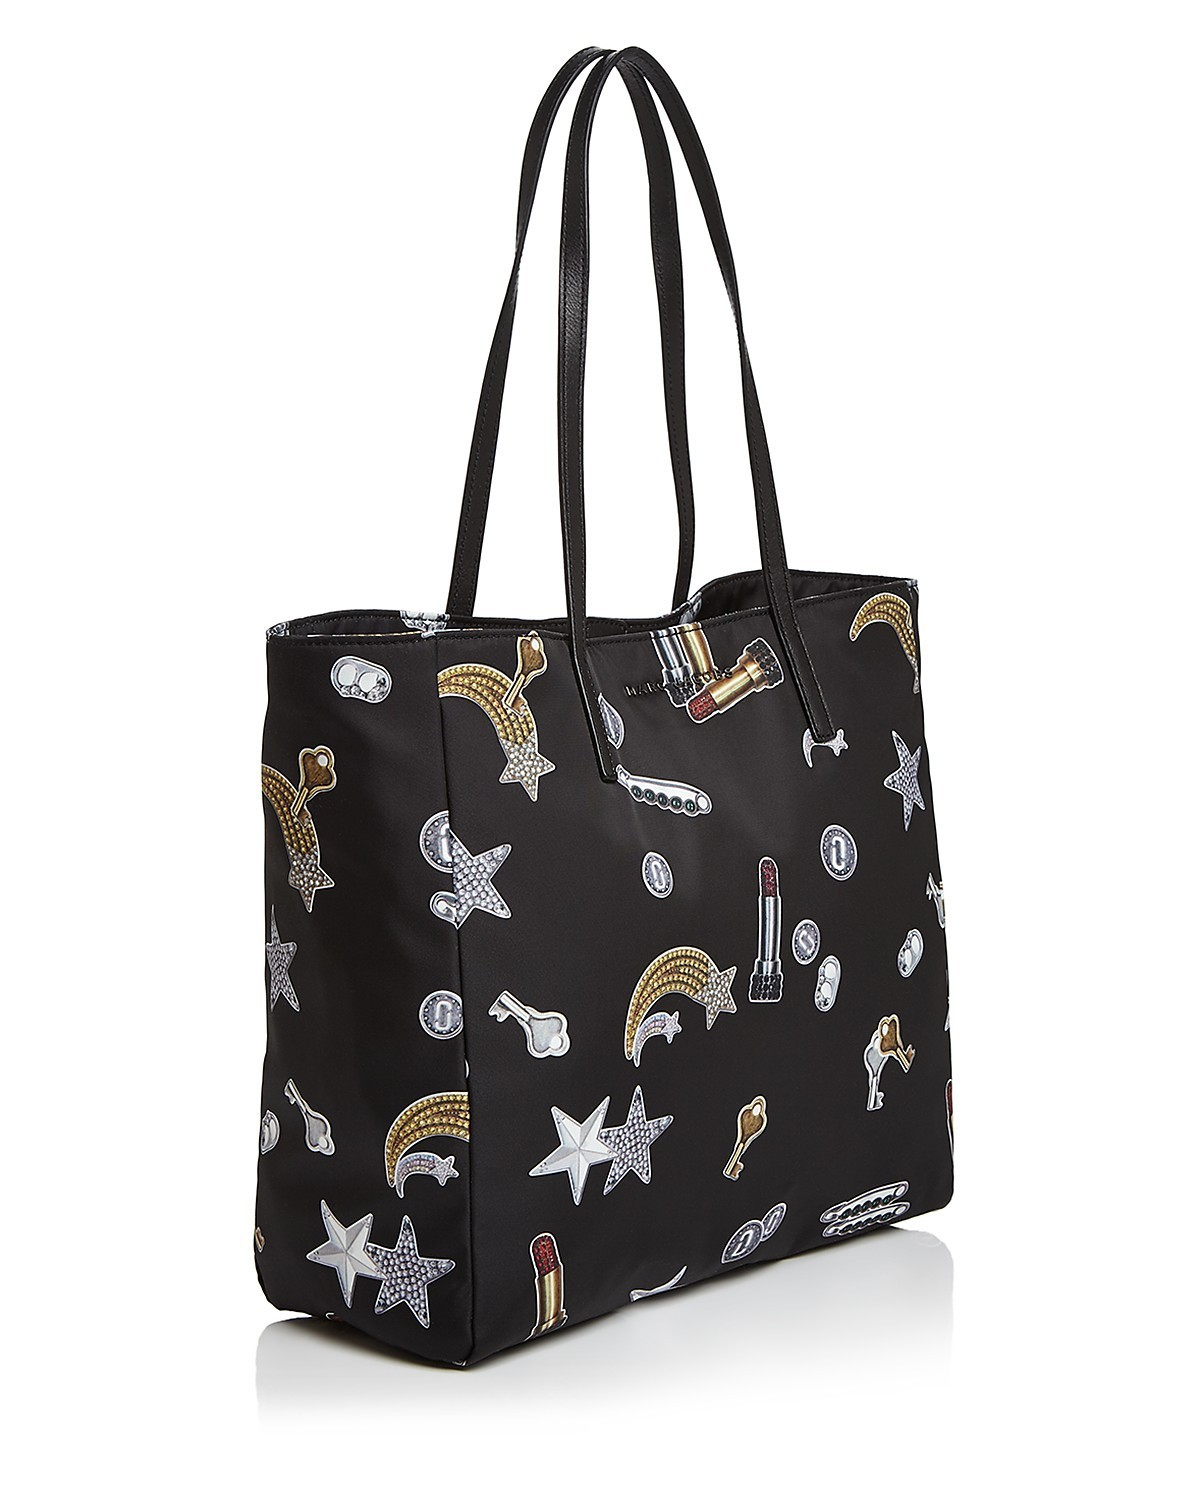 MARC JACOBS☆Tossed Charms Printed Nylon Tote